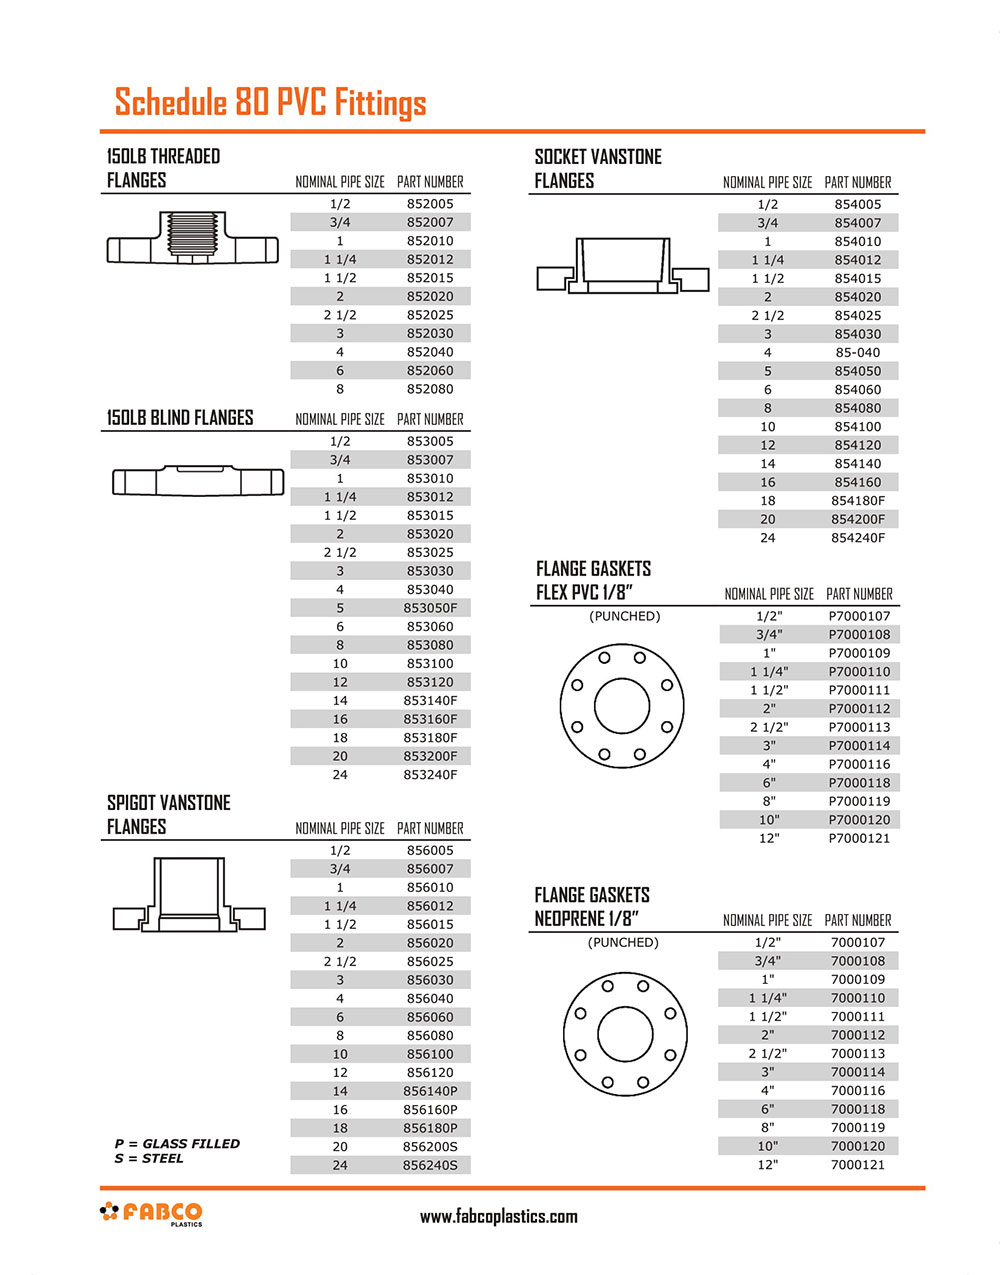 Schedule 80 Grey PVC Fittings